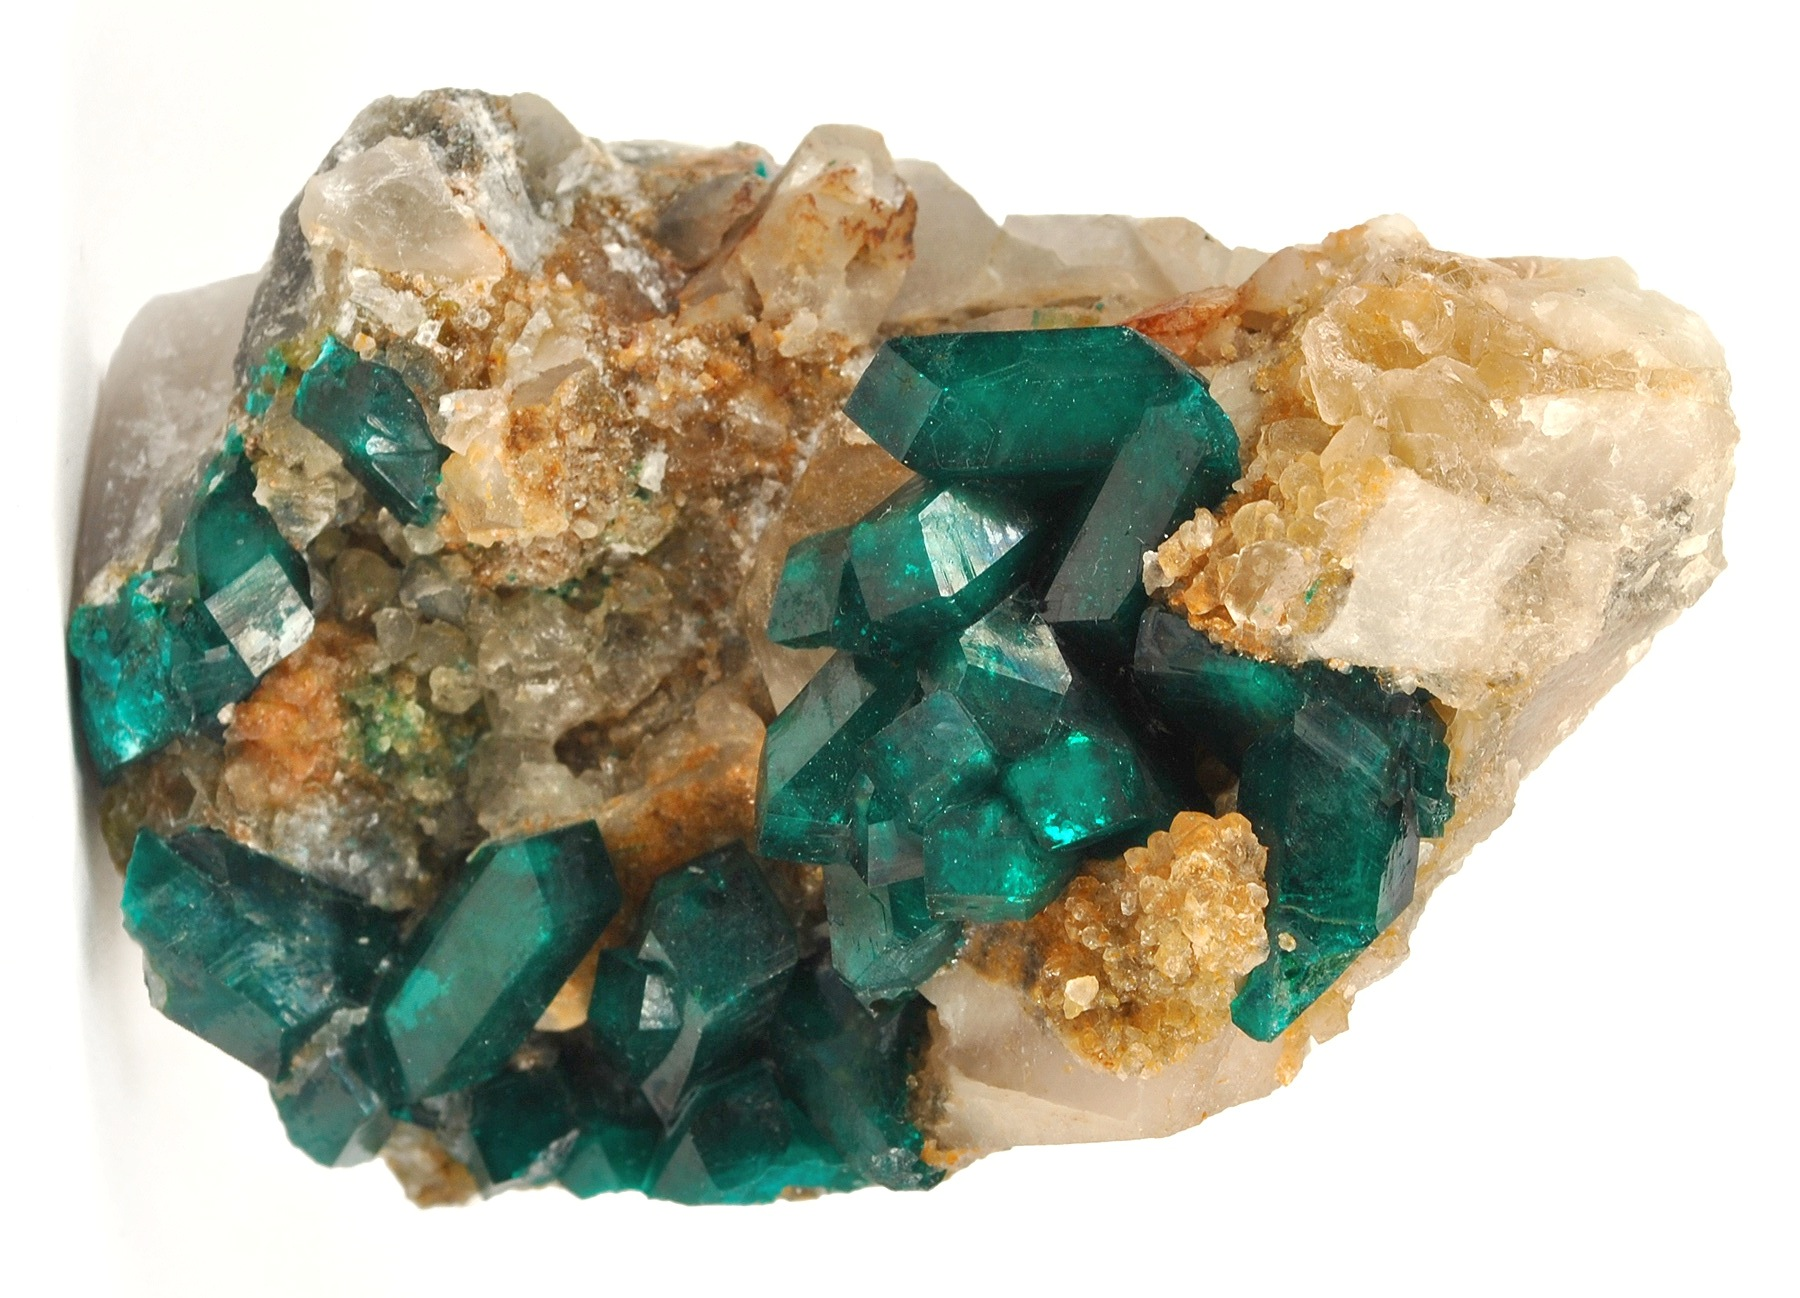 Deep green crystals doubly terminated reach 1 5 cm clustered richly